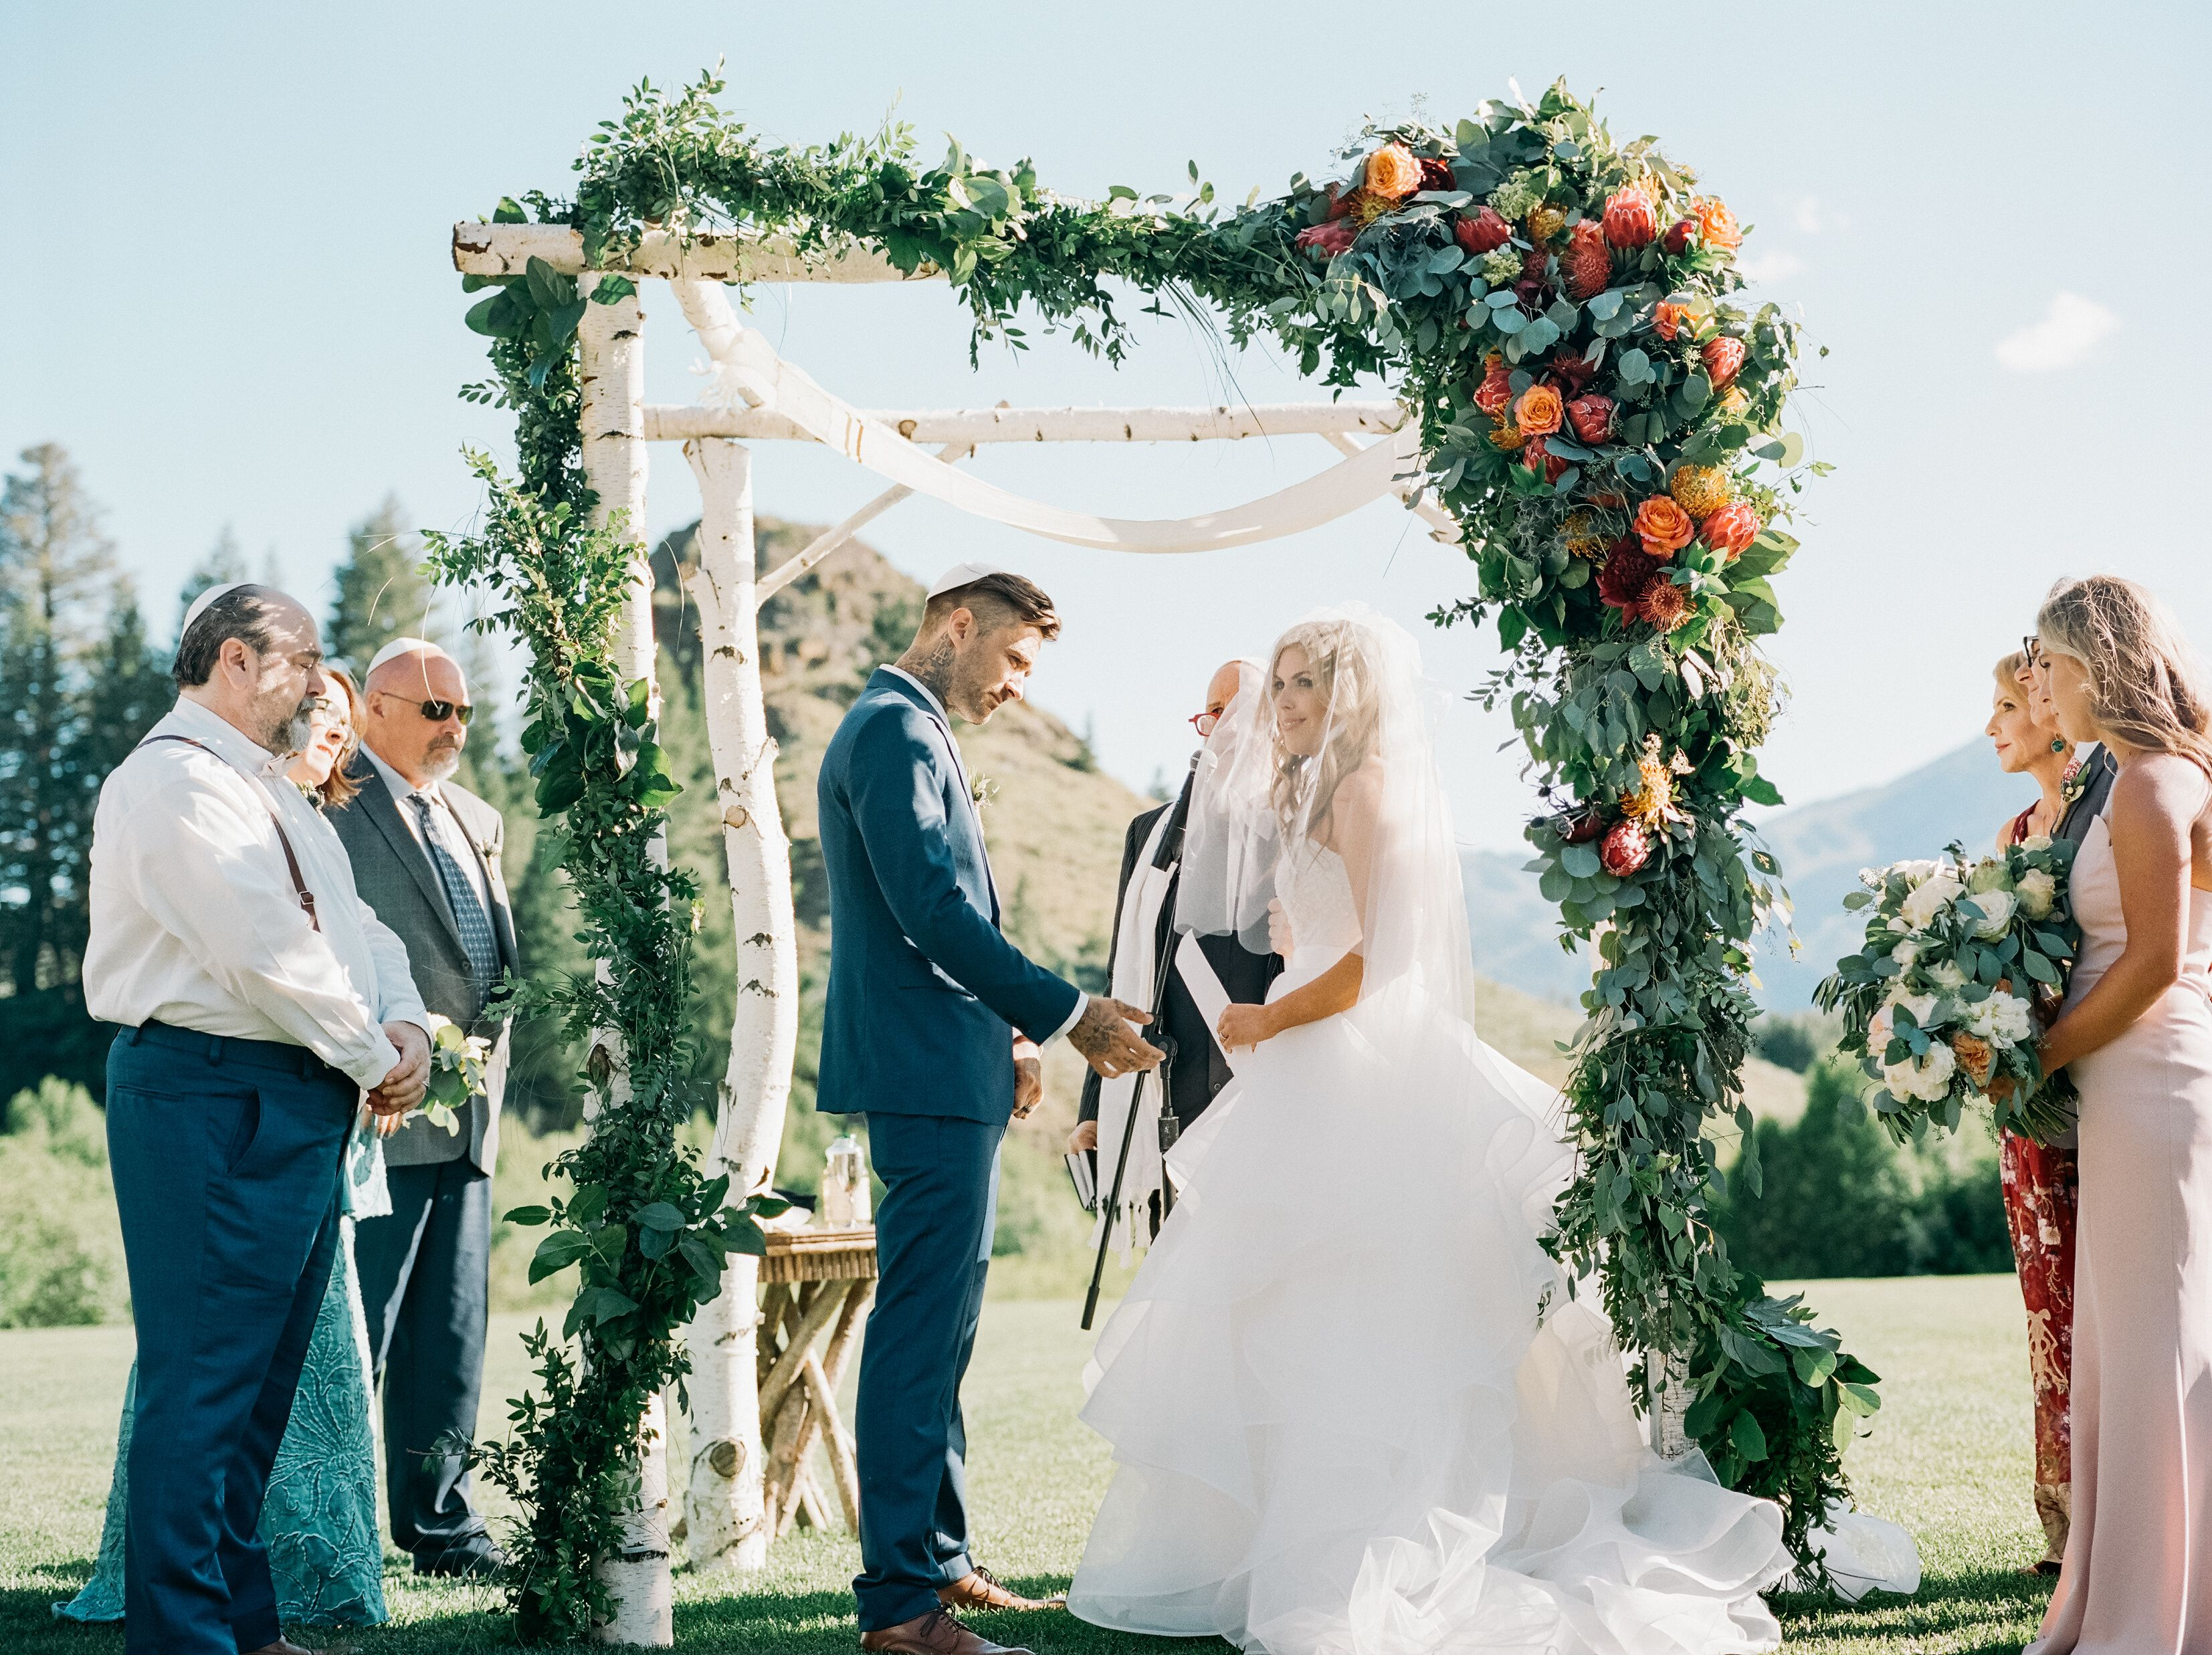 When A Wedding Planner Goes Above And Beyond For The Perfect Day